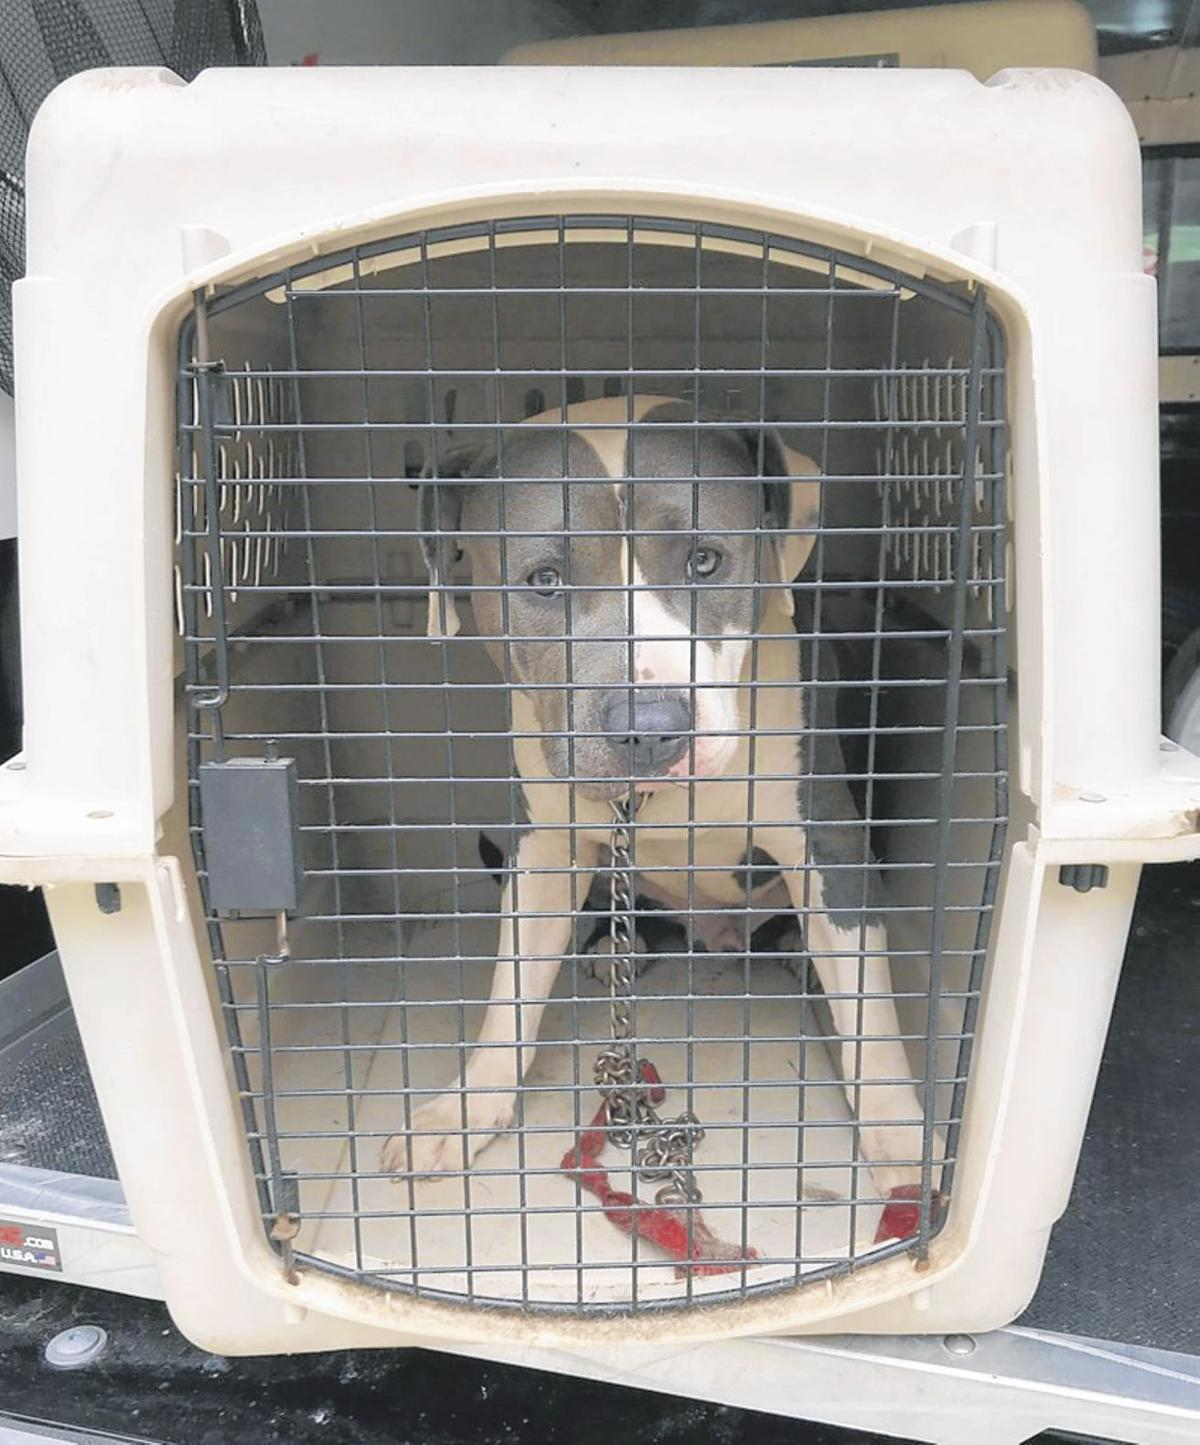 Windsor authorities seek public's help in tracking down owner who abandoned dog